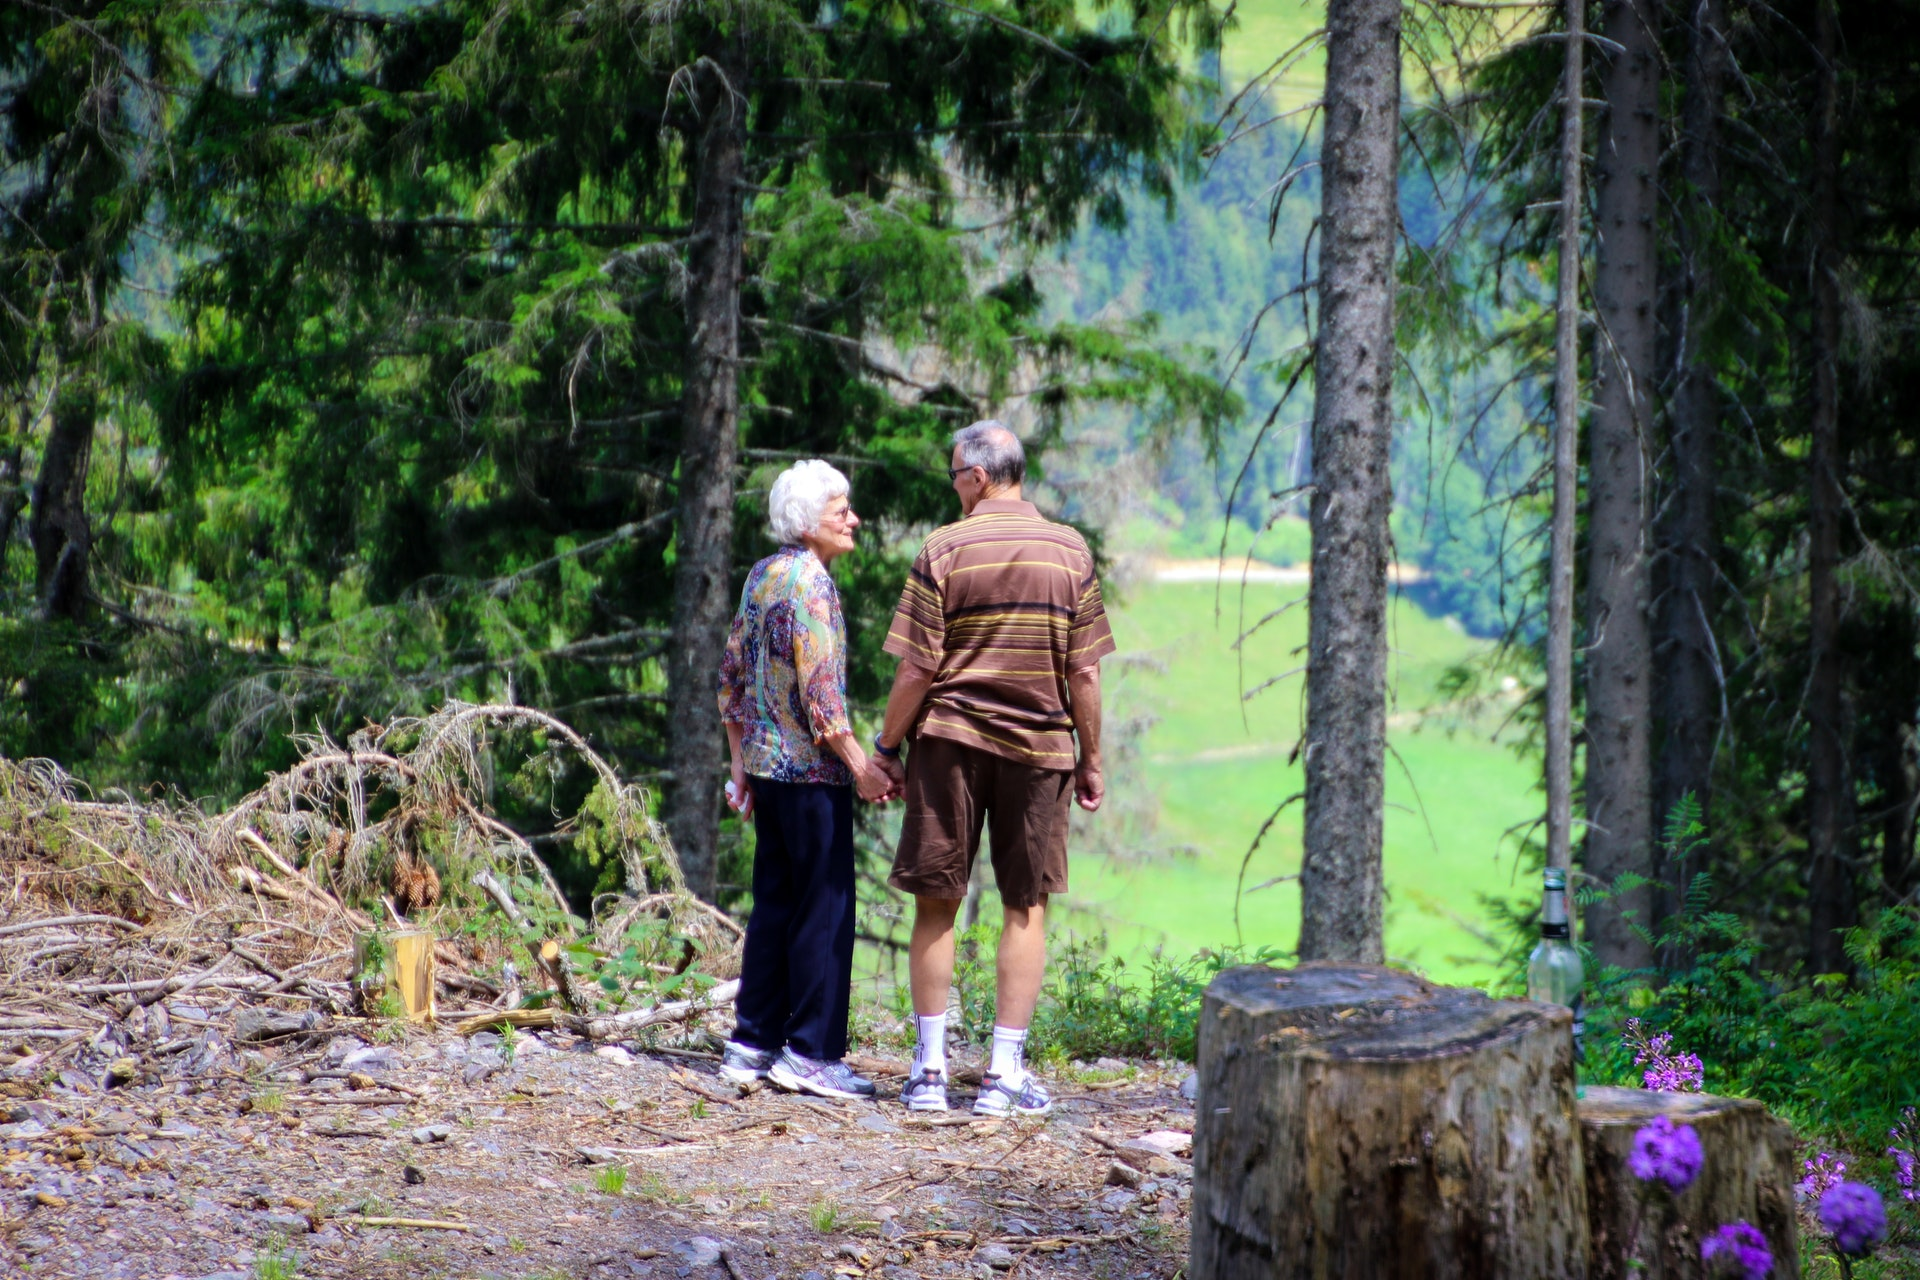 Care Home Or Private Care For The Elderly?